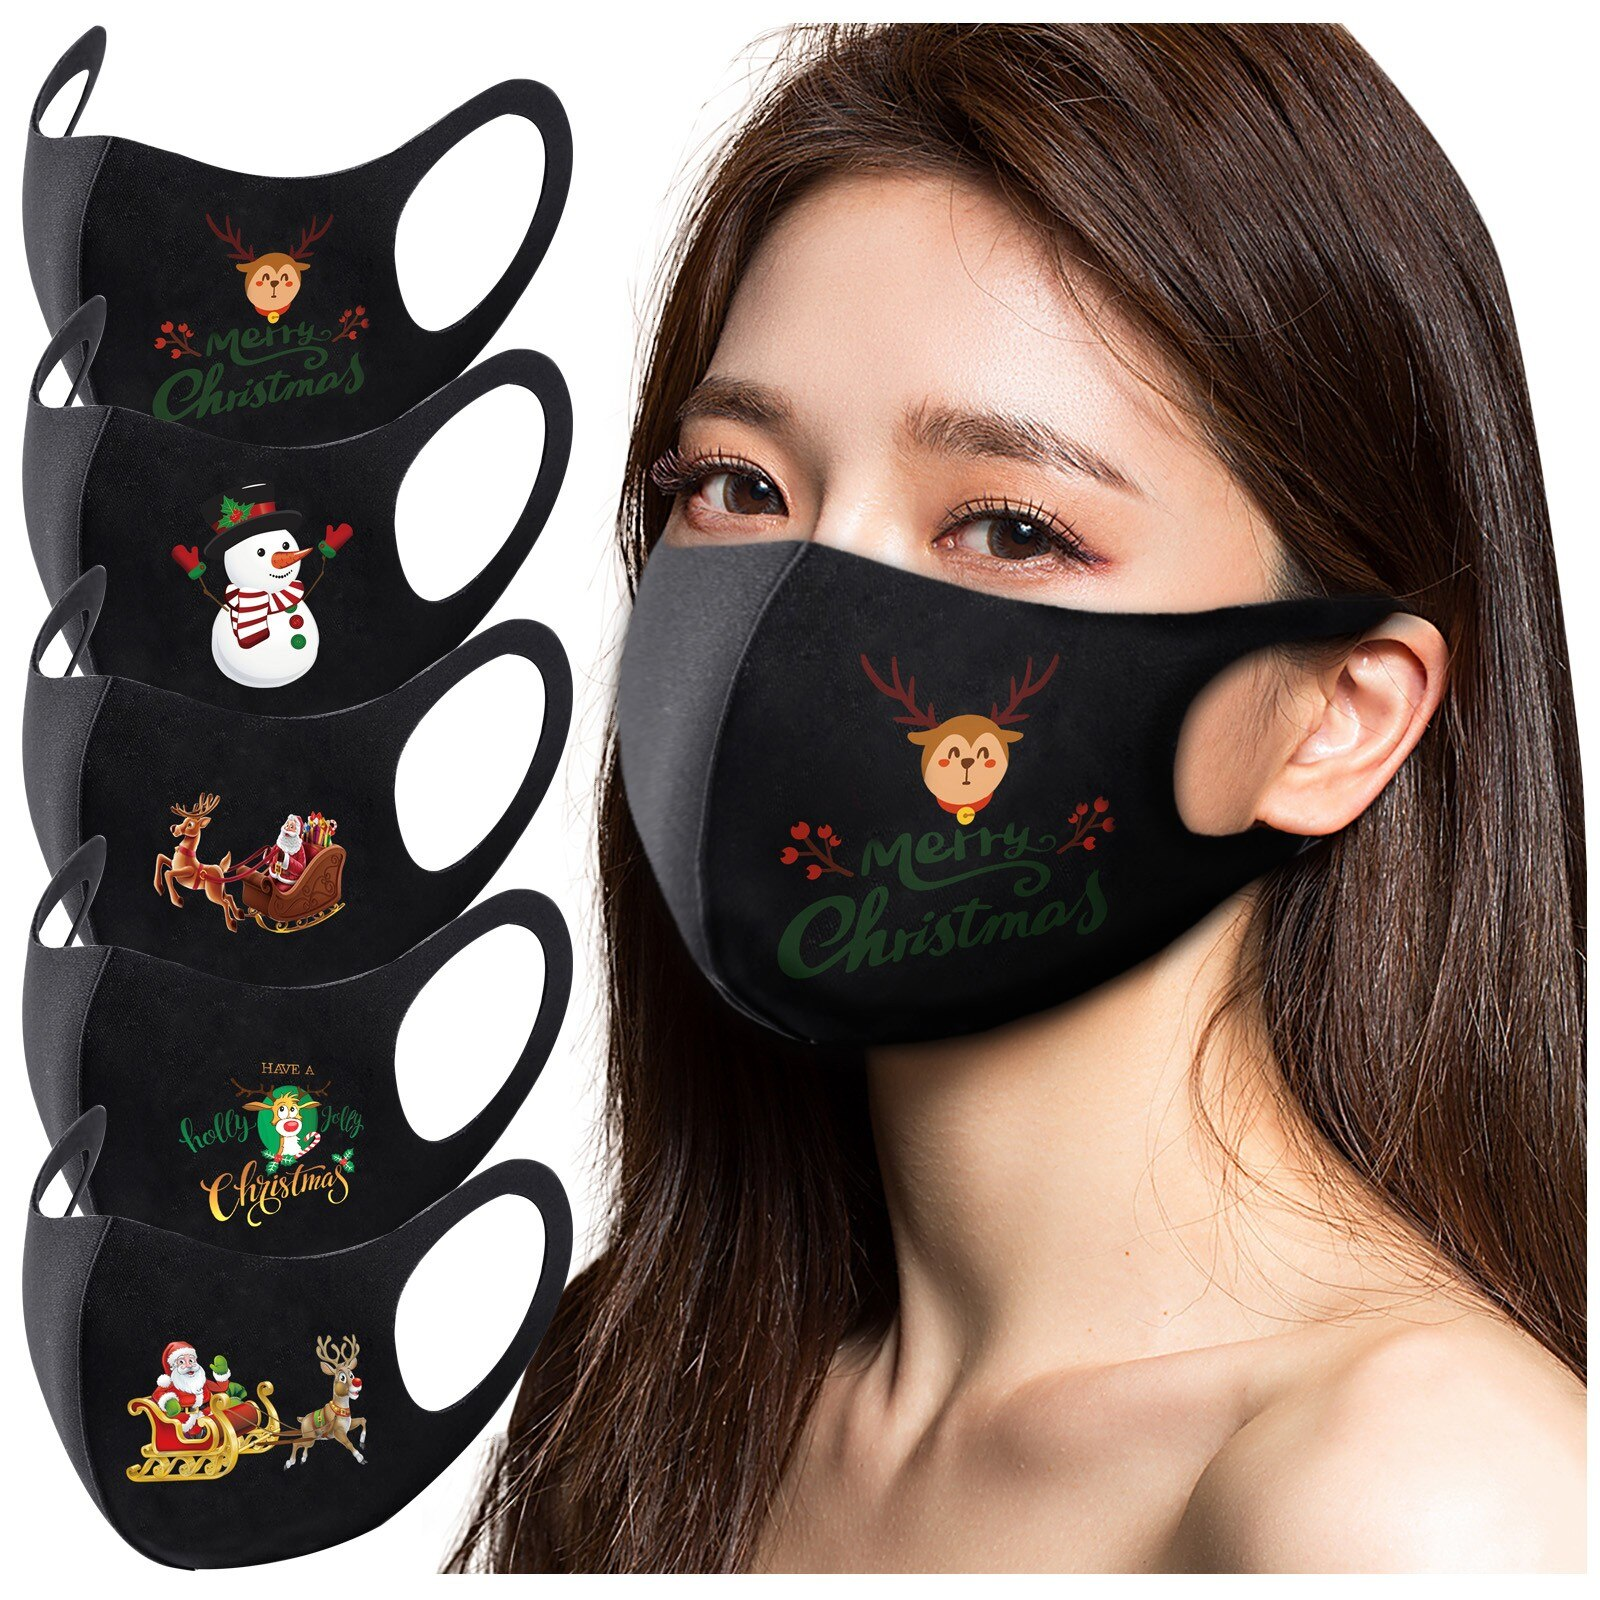 5pc Adult Christmas Face Mask Washable Mouth Fabric Facial Mask For Protection Reusable Santa Earloop Mouth Caps Маска mask 9.29 1